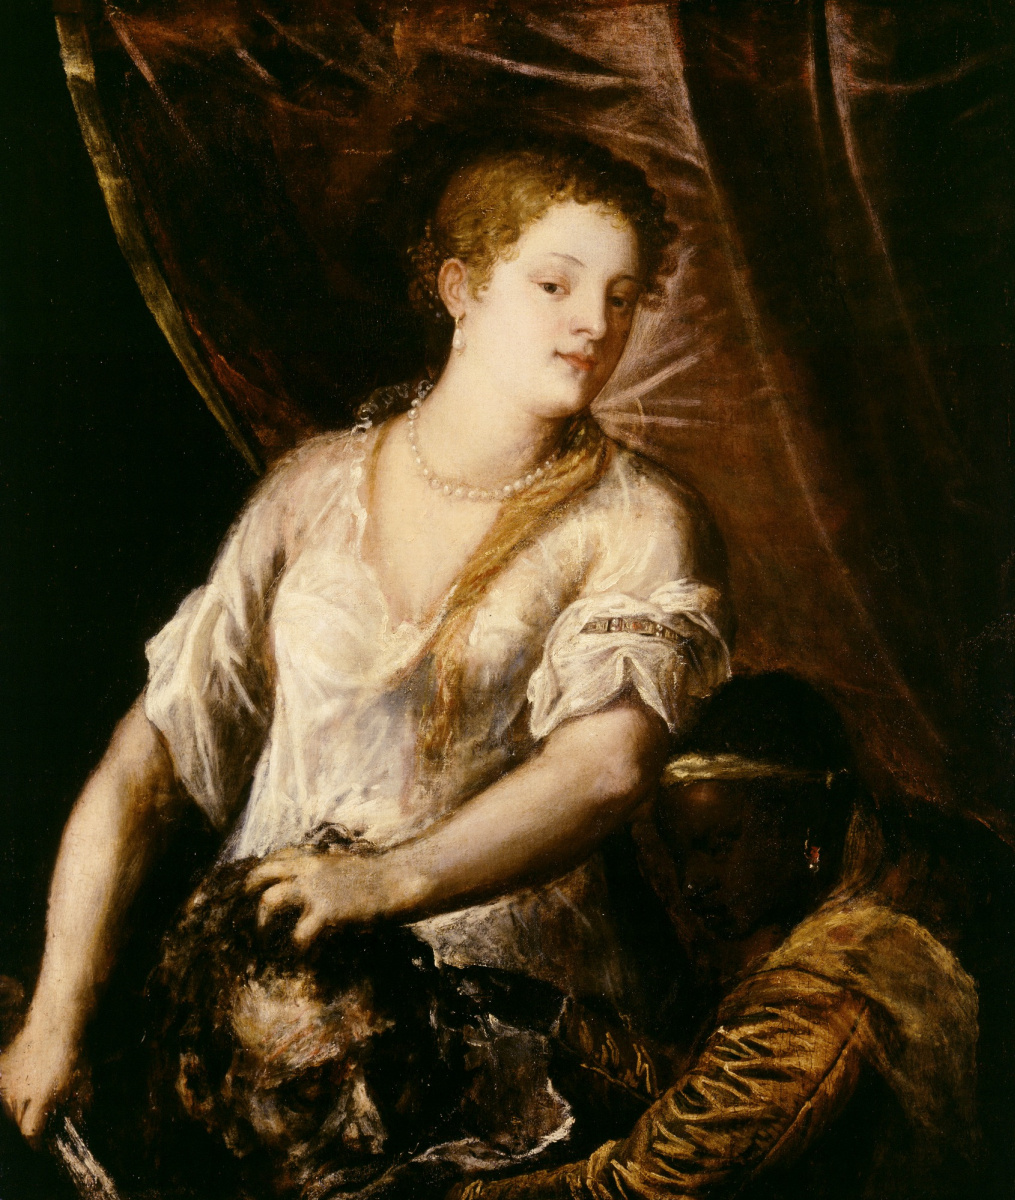 Titian Vecelli. Judith with the head of Holofernes